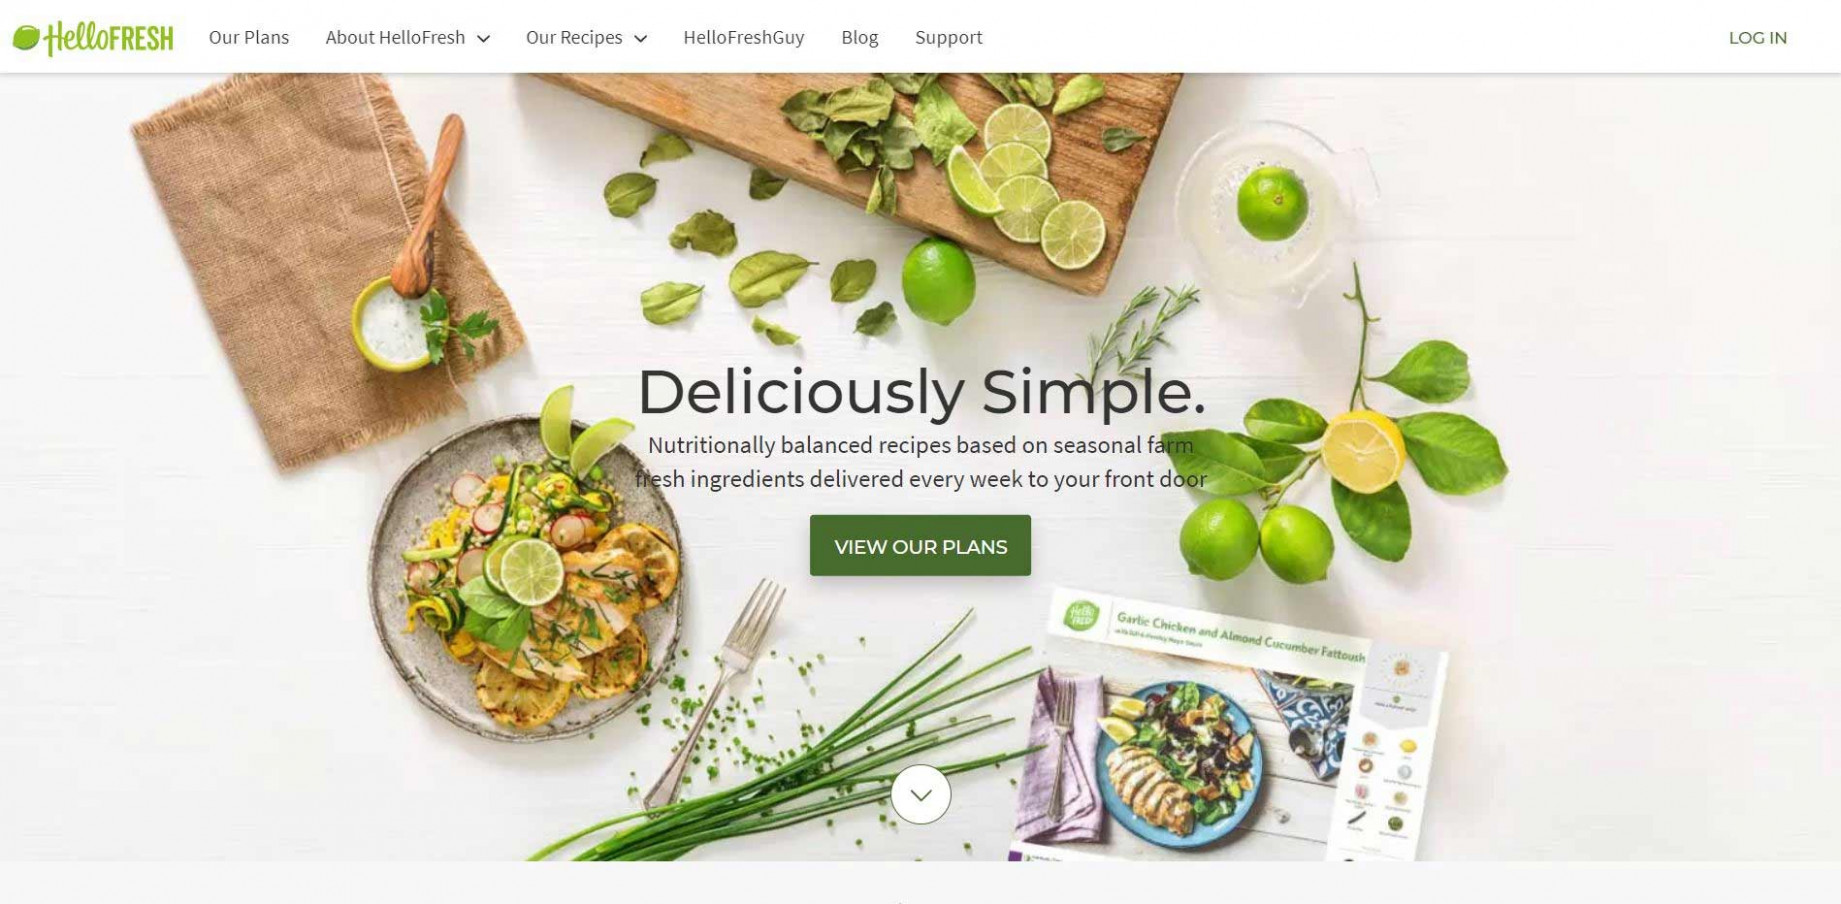 HelloFresh review - Why I tried HelloFresh (and loved it ..